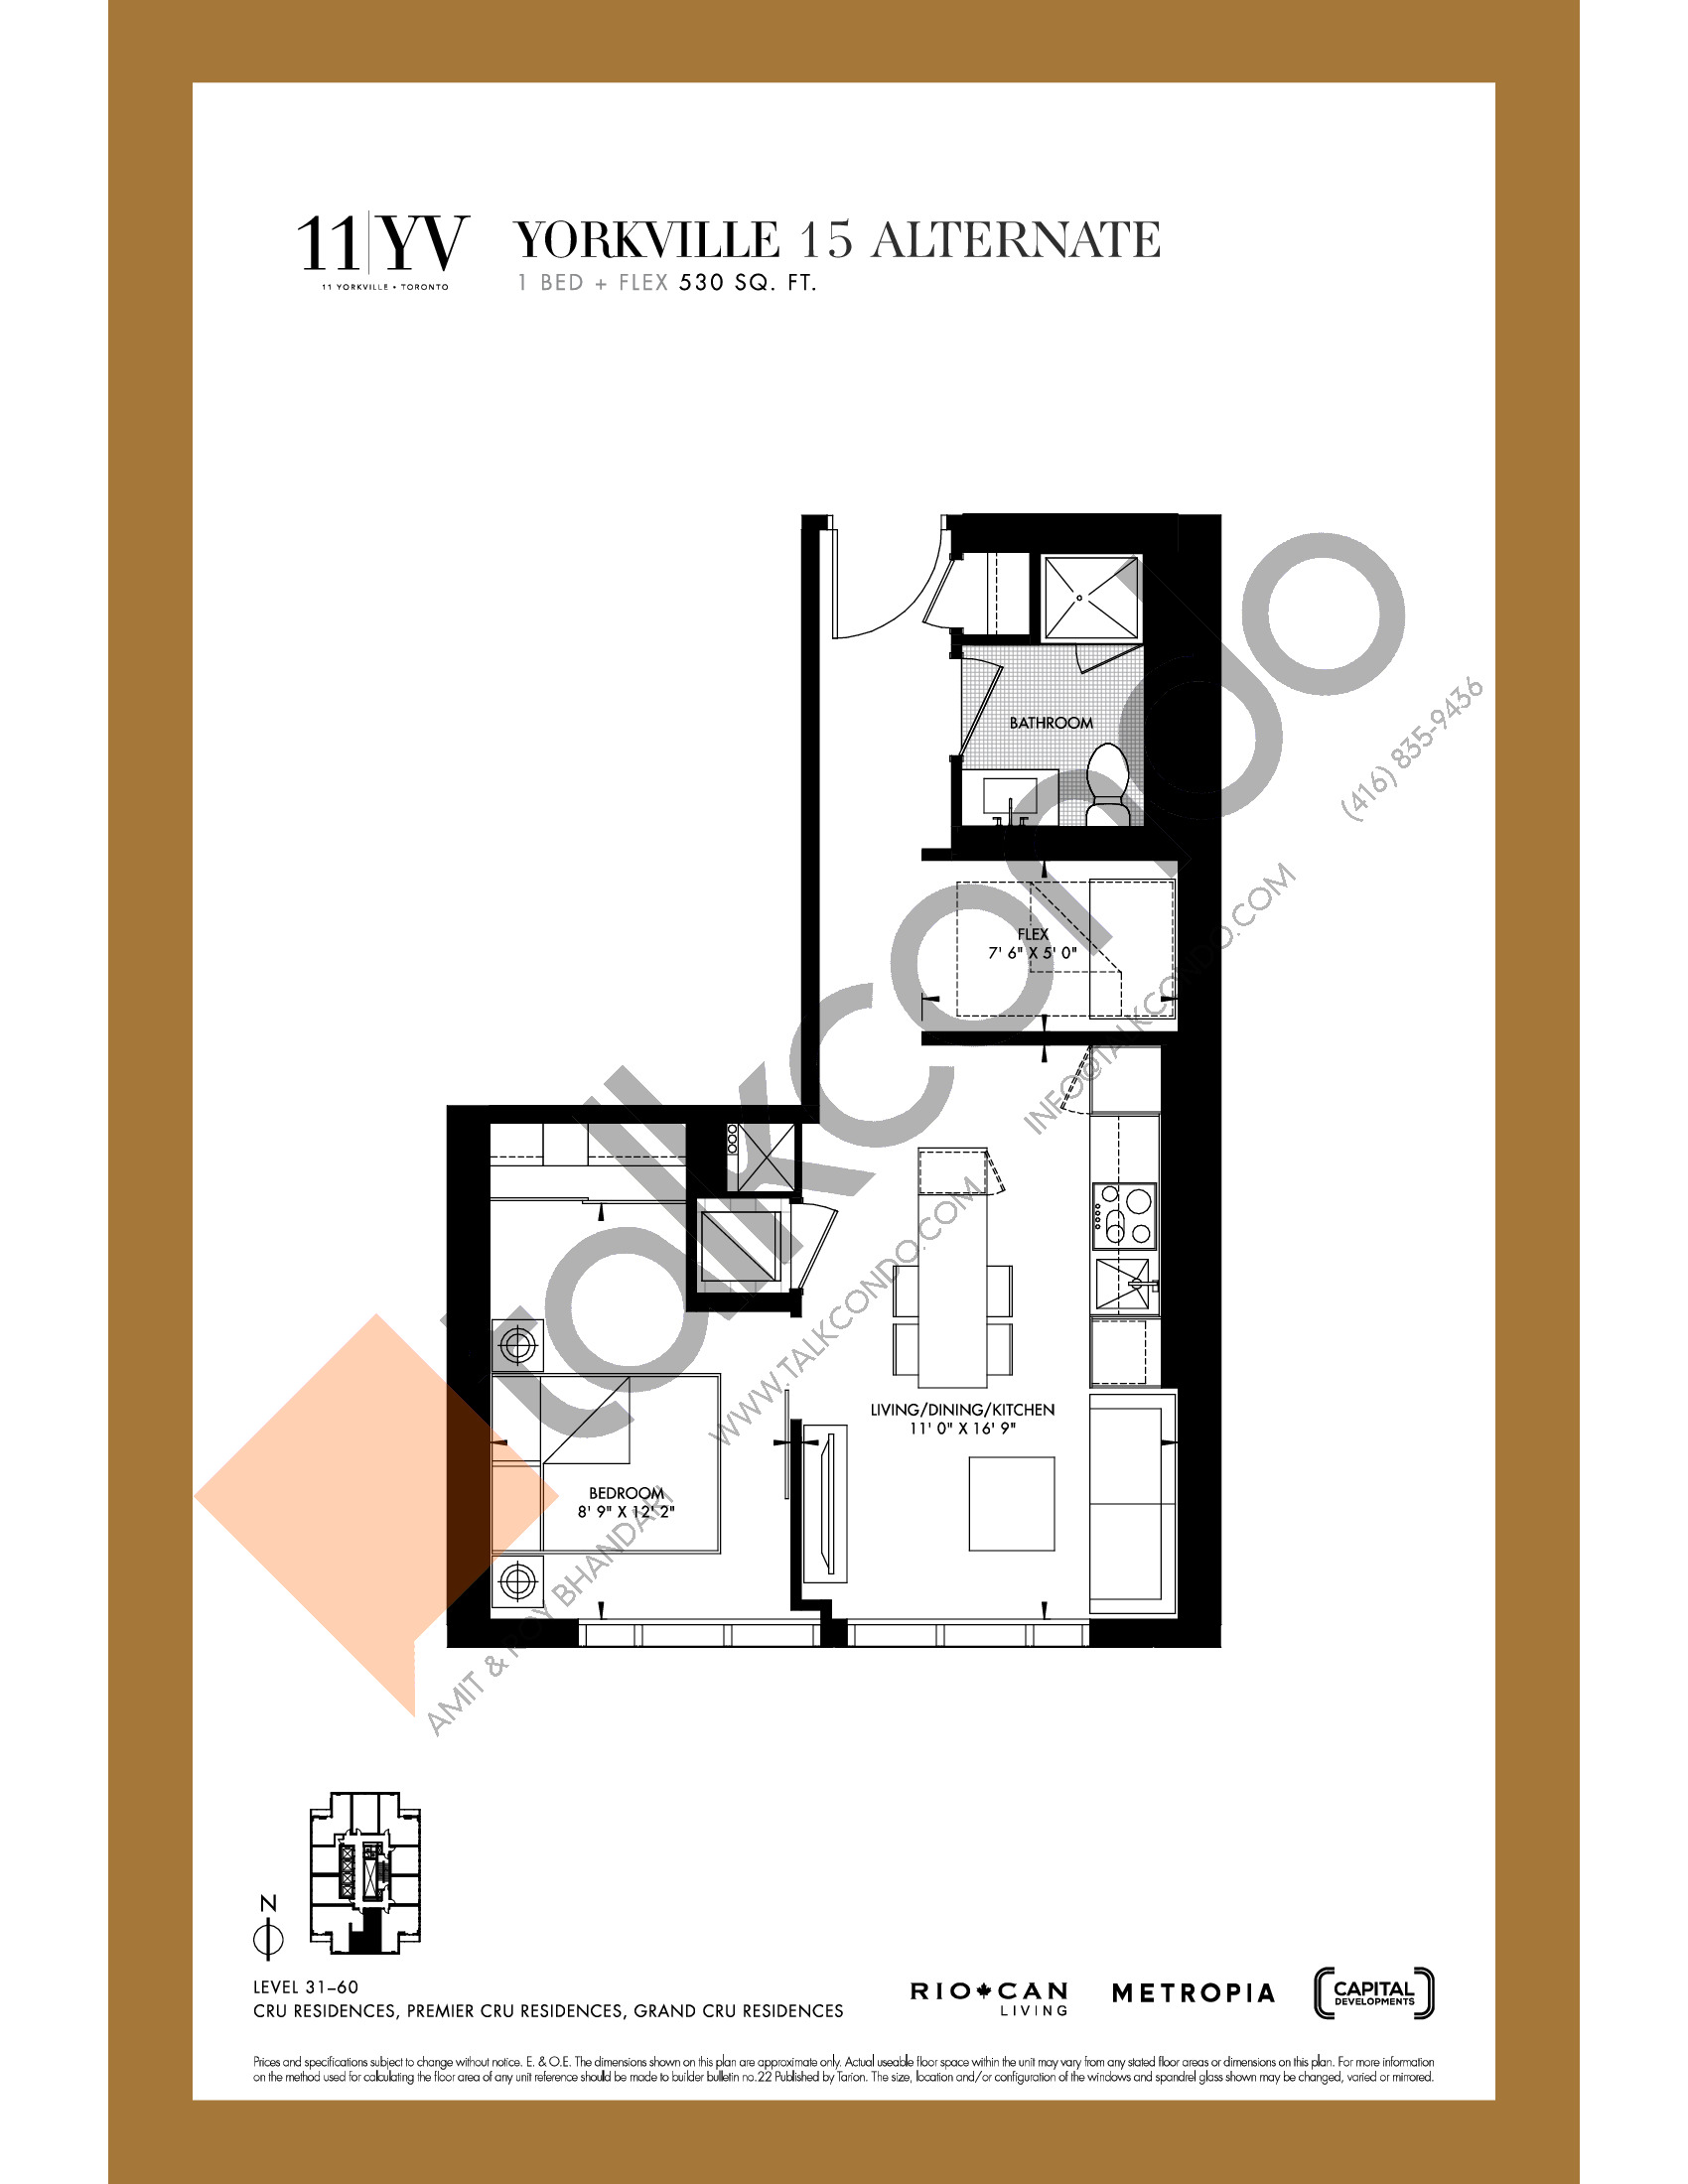 Yorkville 15 Alternate Floor Plan at 11YV Condos - 530 sq.ft